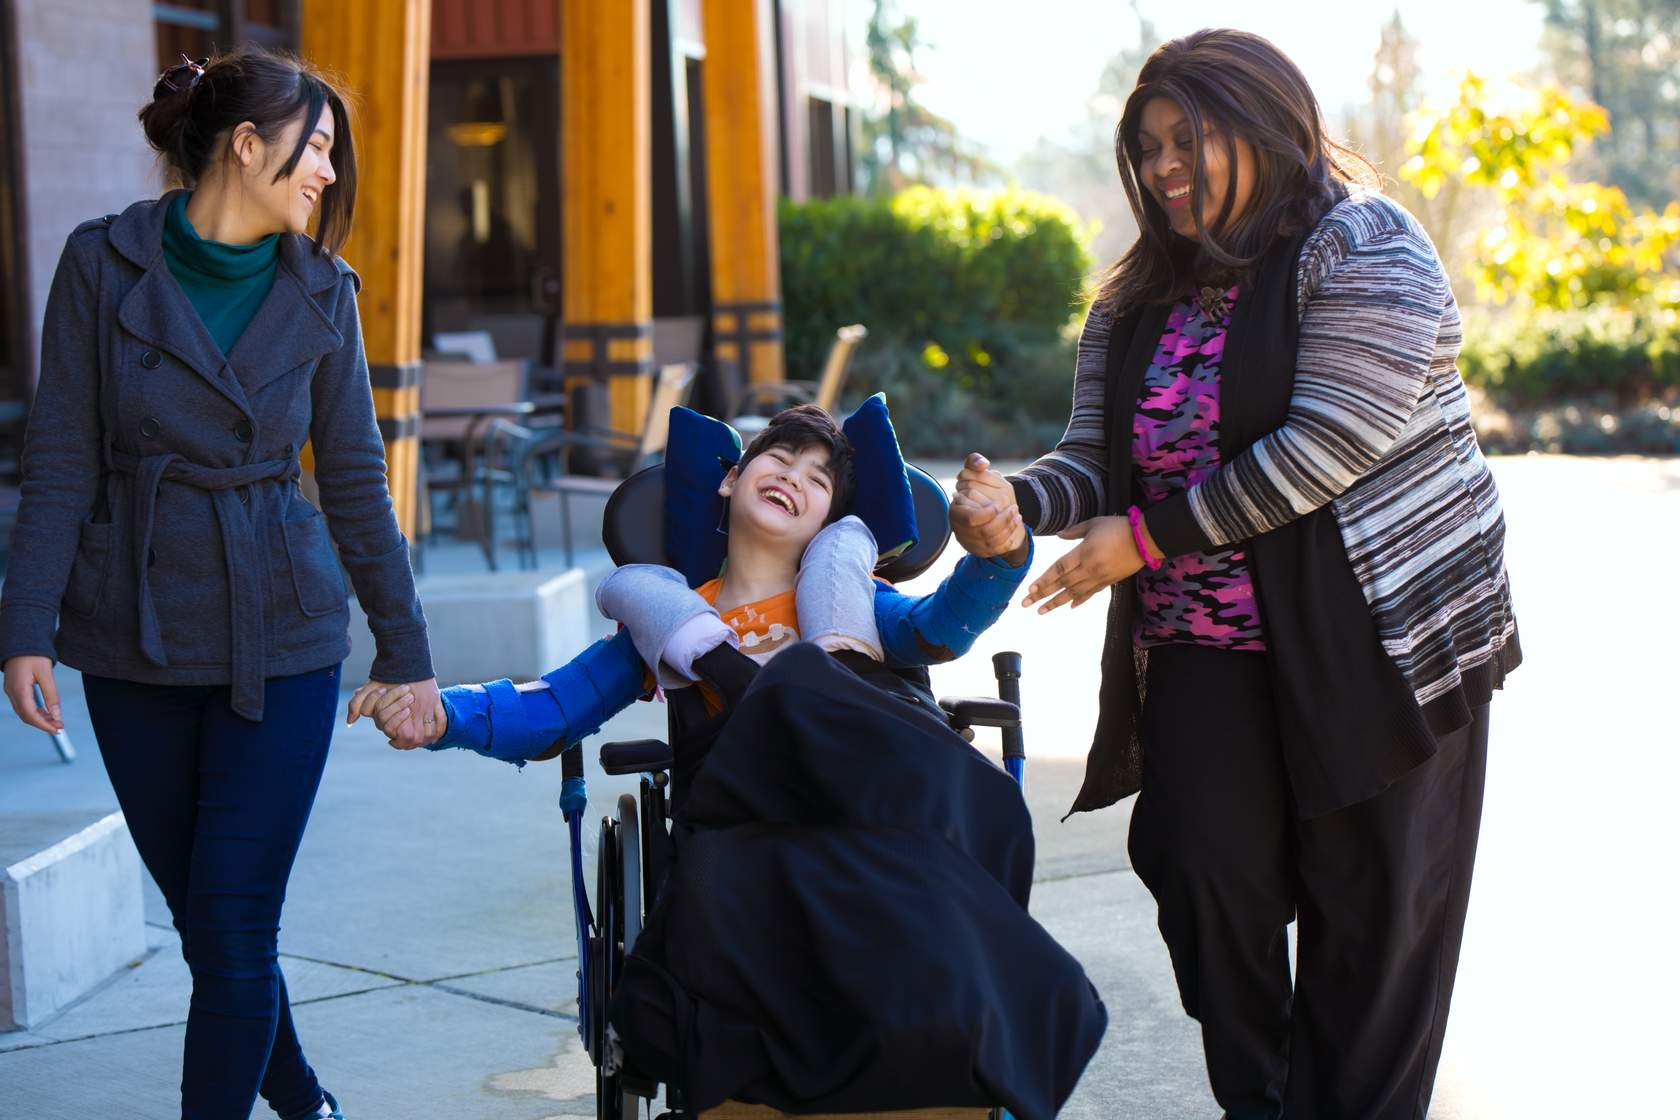 Two adult women and one child are walking together outside near a restaurant. The two women are each holding a hand of the girl, who is using a wheelchair. They are all smiling.